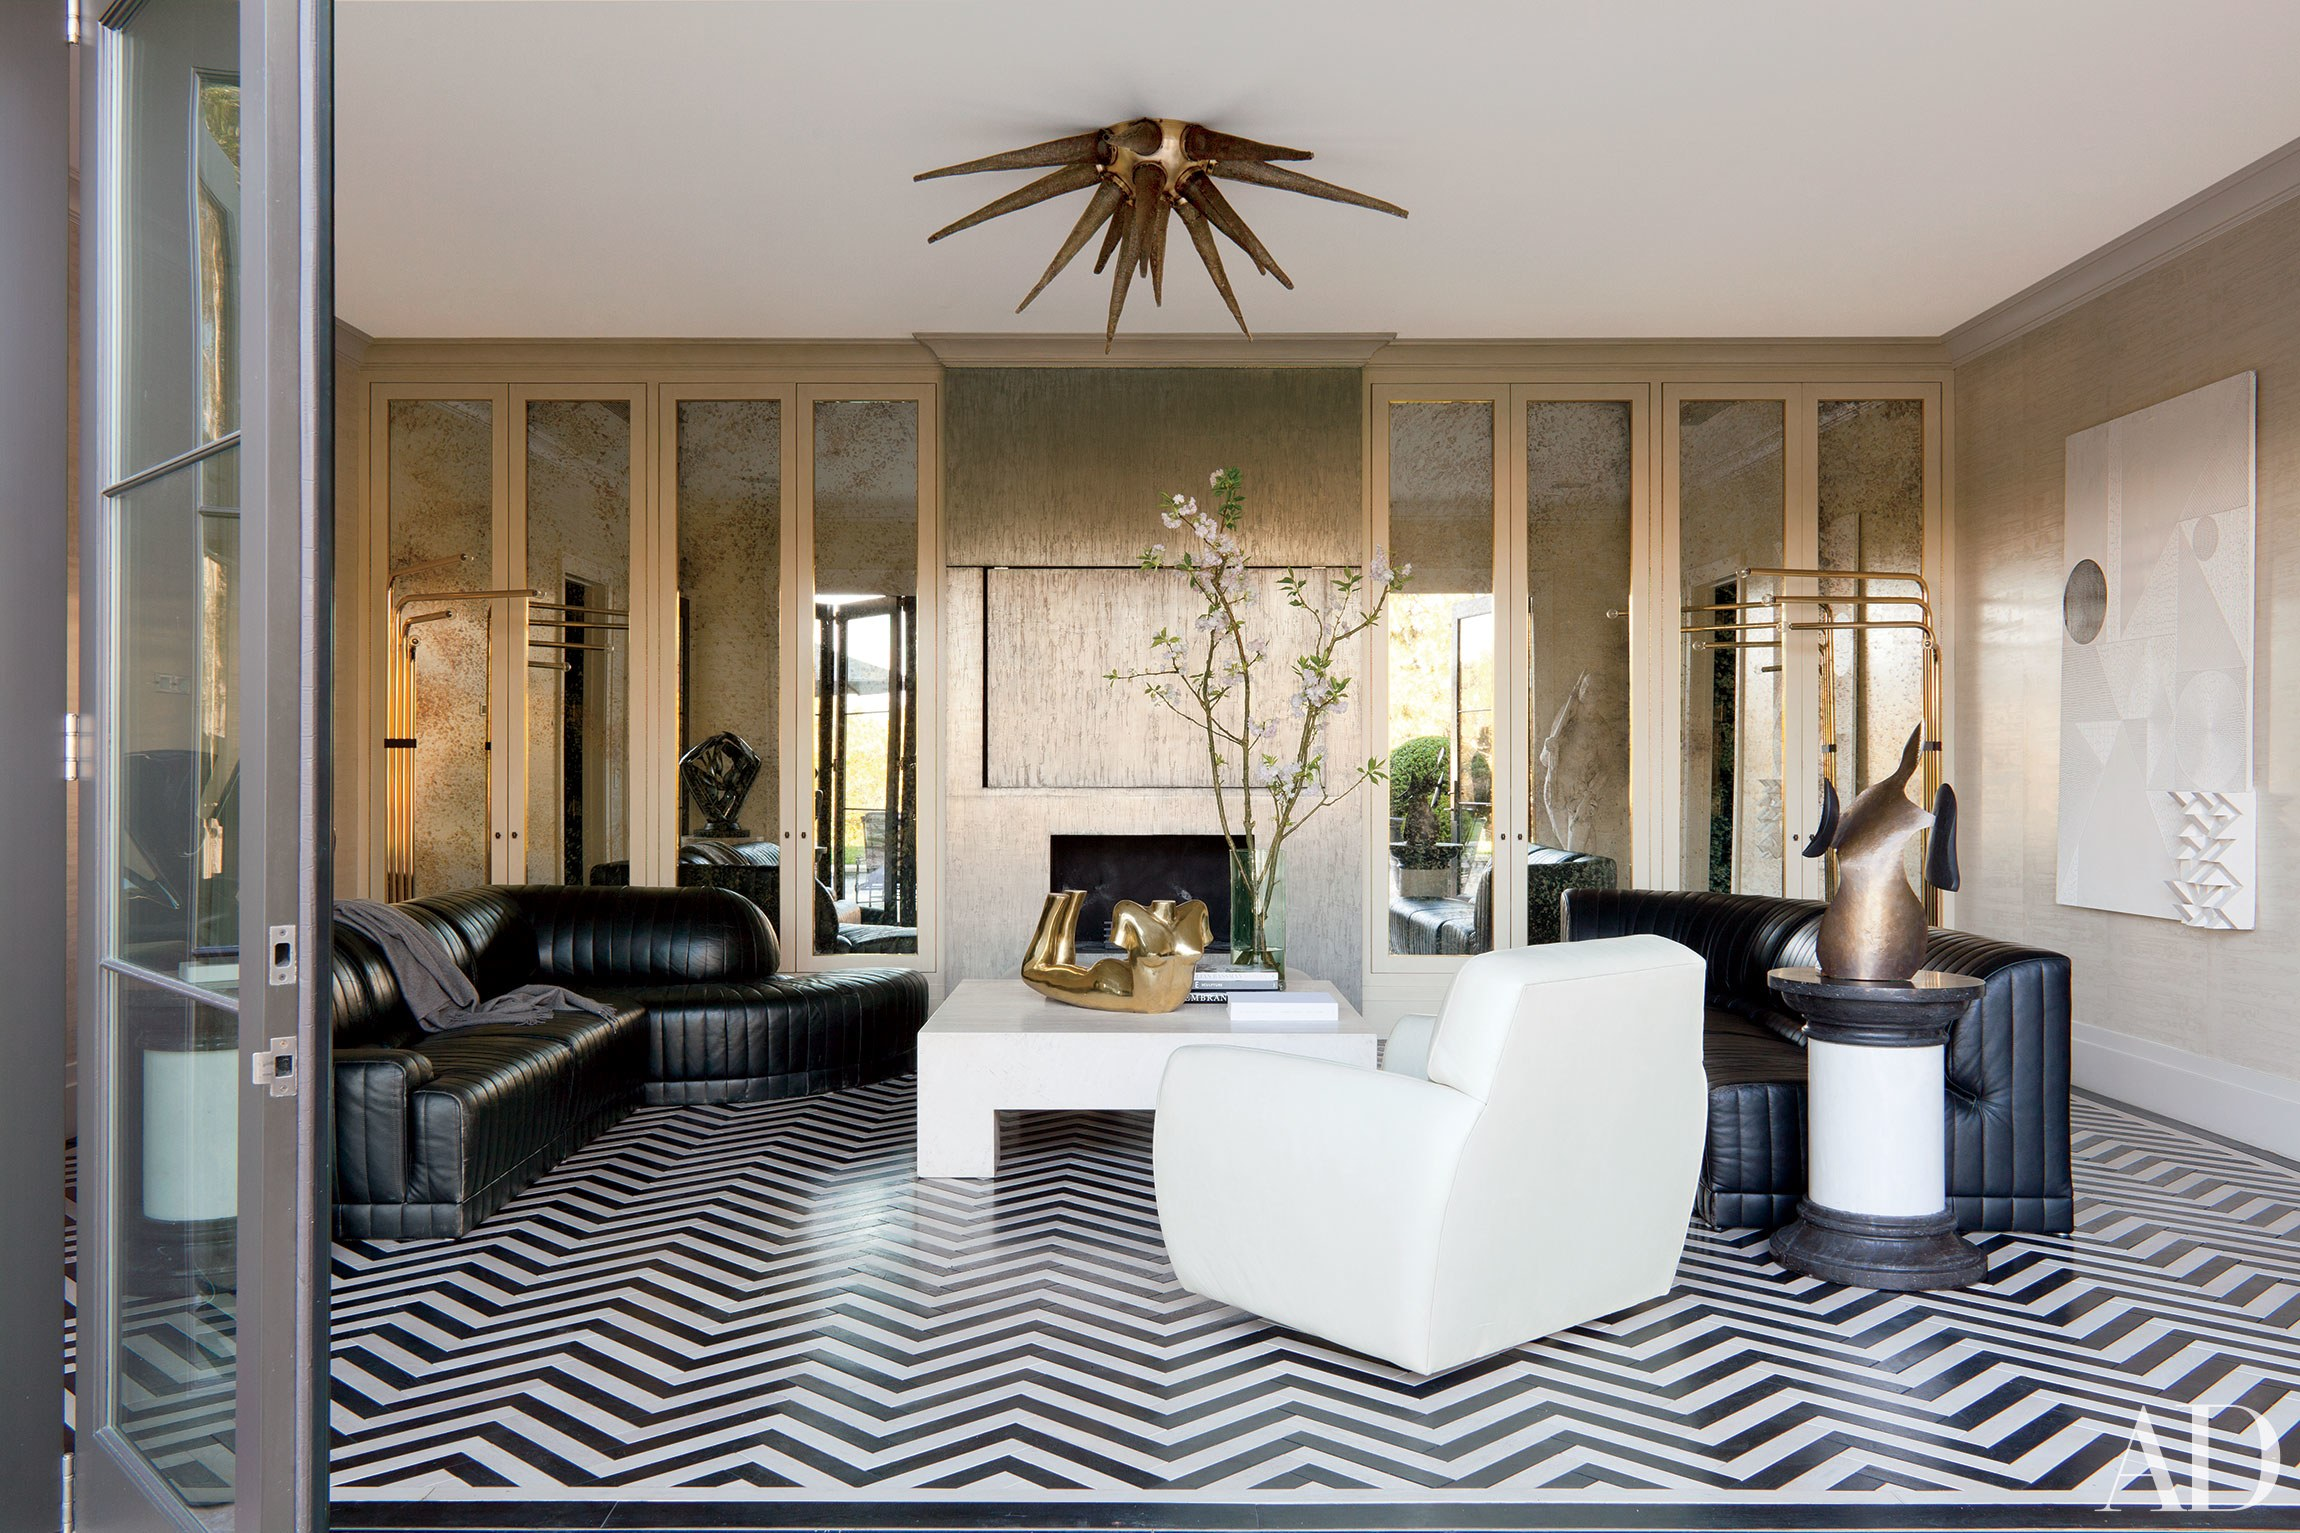 7 grey and black art deco rugs star in new kelly wearstler interiors. Black Bedroom Furniture Sets. Home Design Ideas